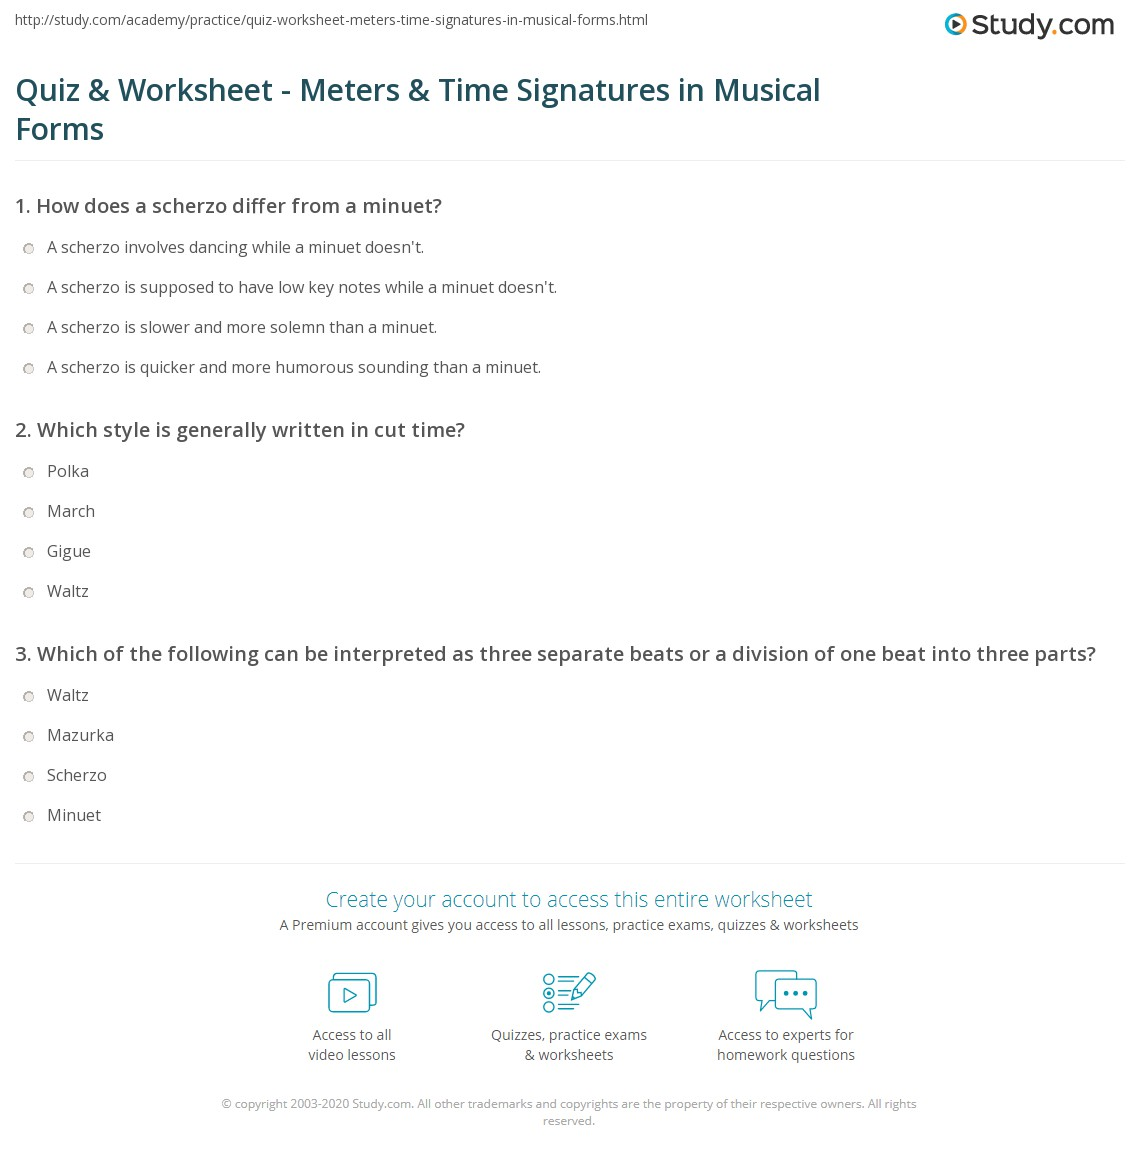 quiz worksheet meters time signatures in musical forms. Black Bedroom Furniture Sets. Home Design Ideas